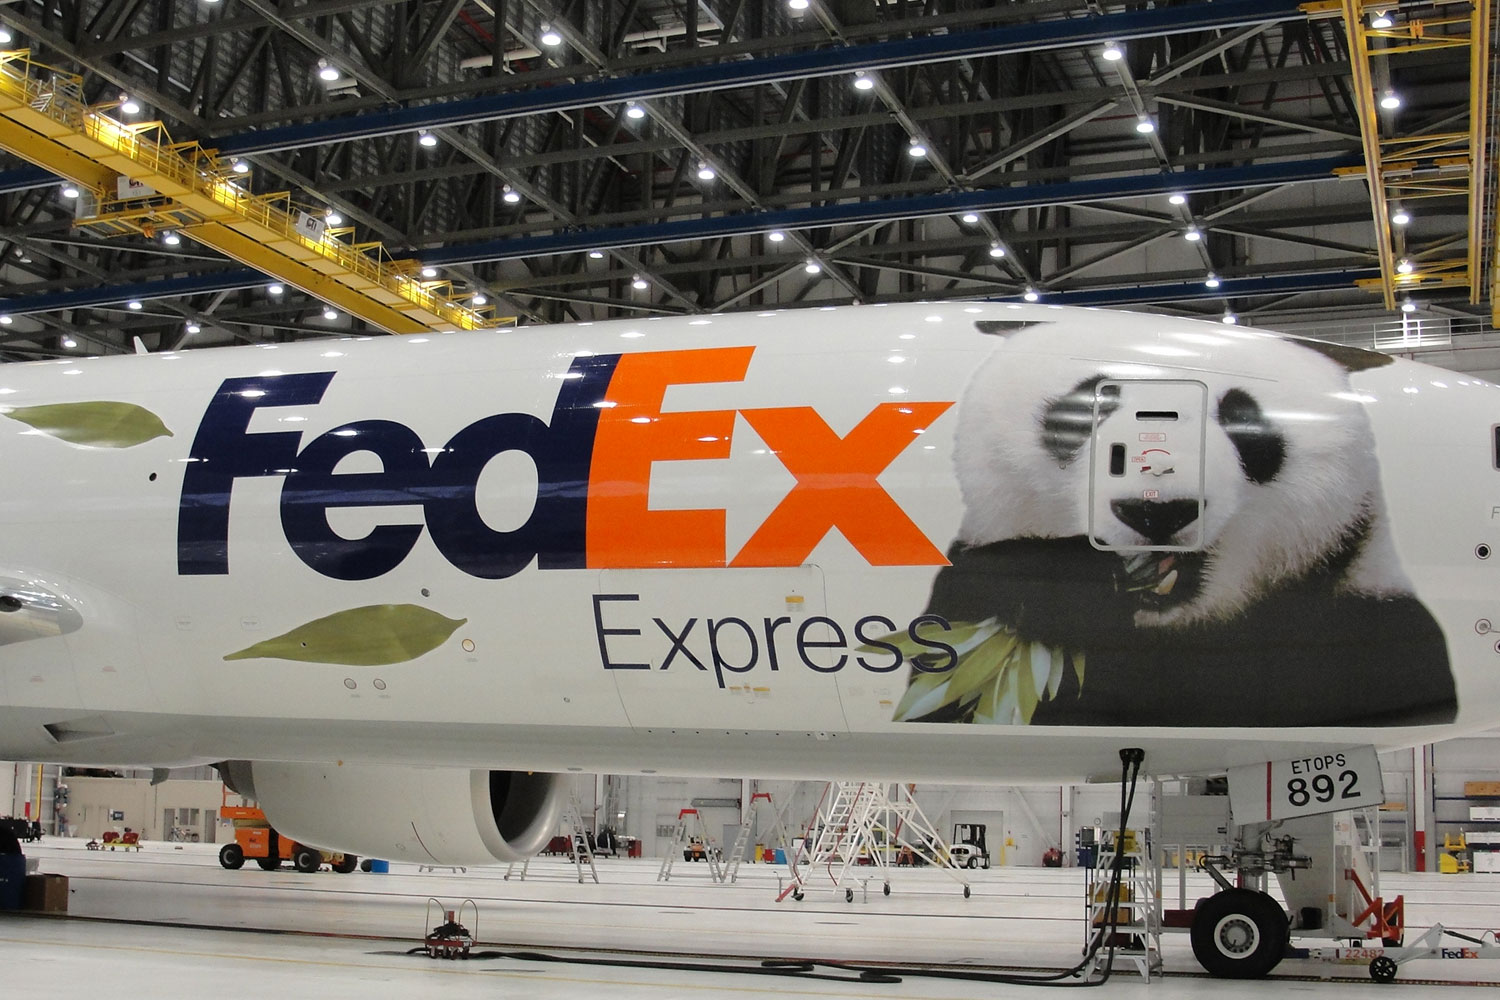 The specially marked Boeing 777 used to deliver two pandas from China to Toronto.